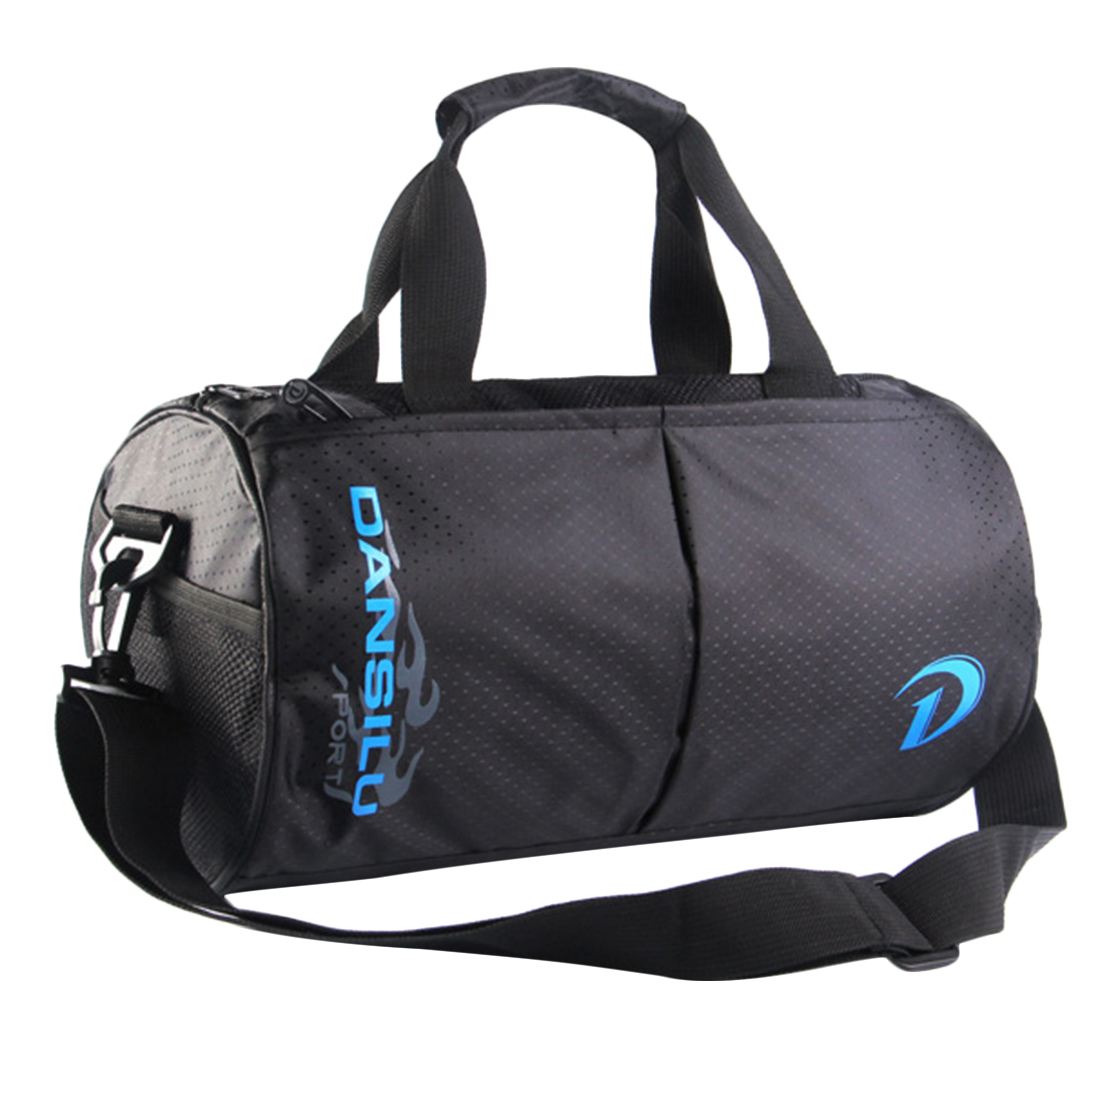 Compare Prices on Men Sports Bags- Online Shopping/Buy Low Price ...